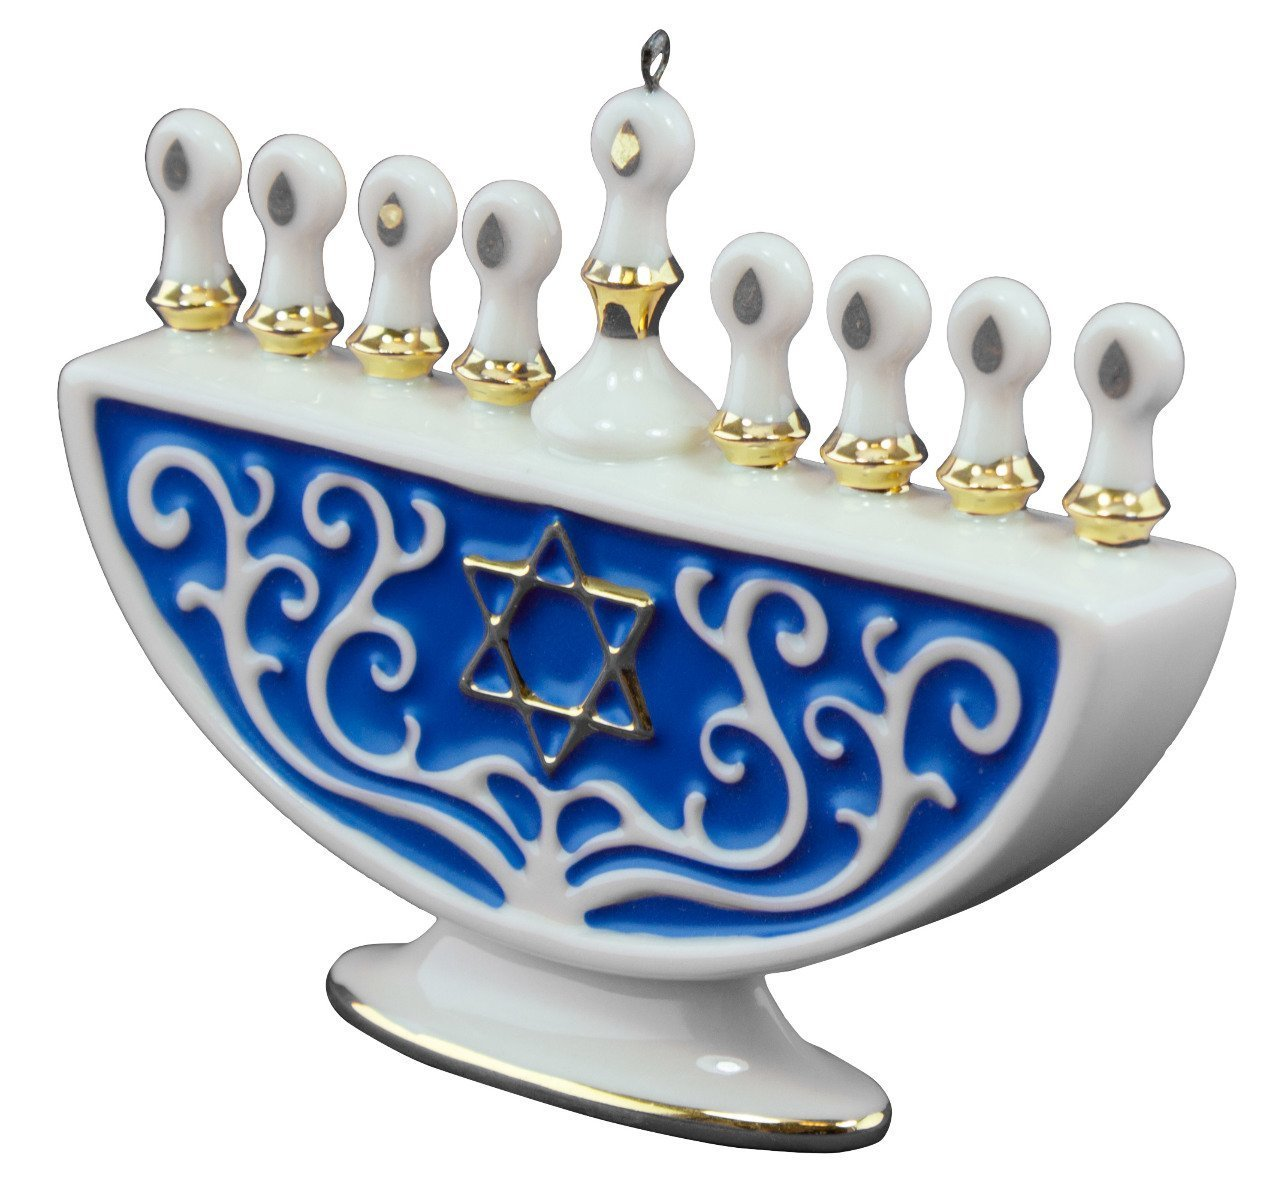 Hallmark The Festival of Lights Menorah Porcelain Ornament